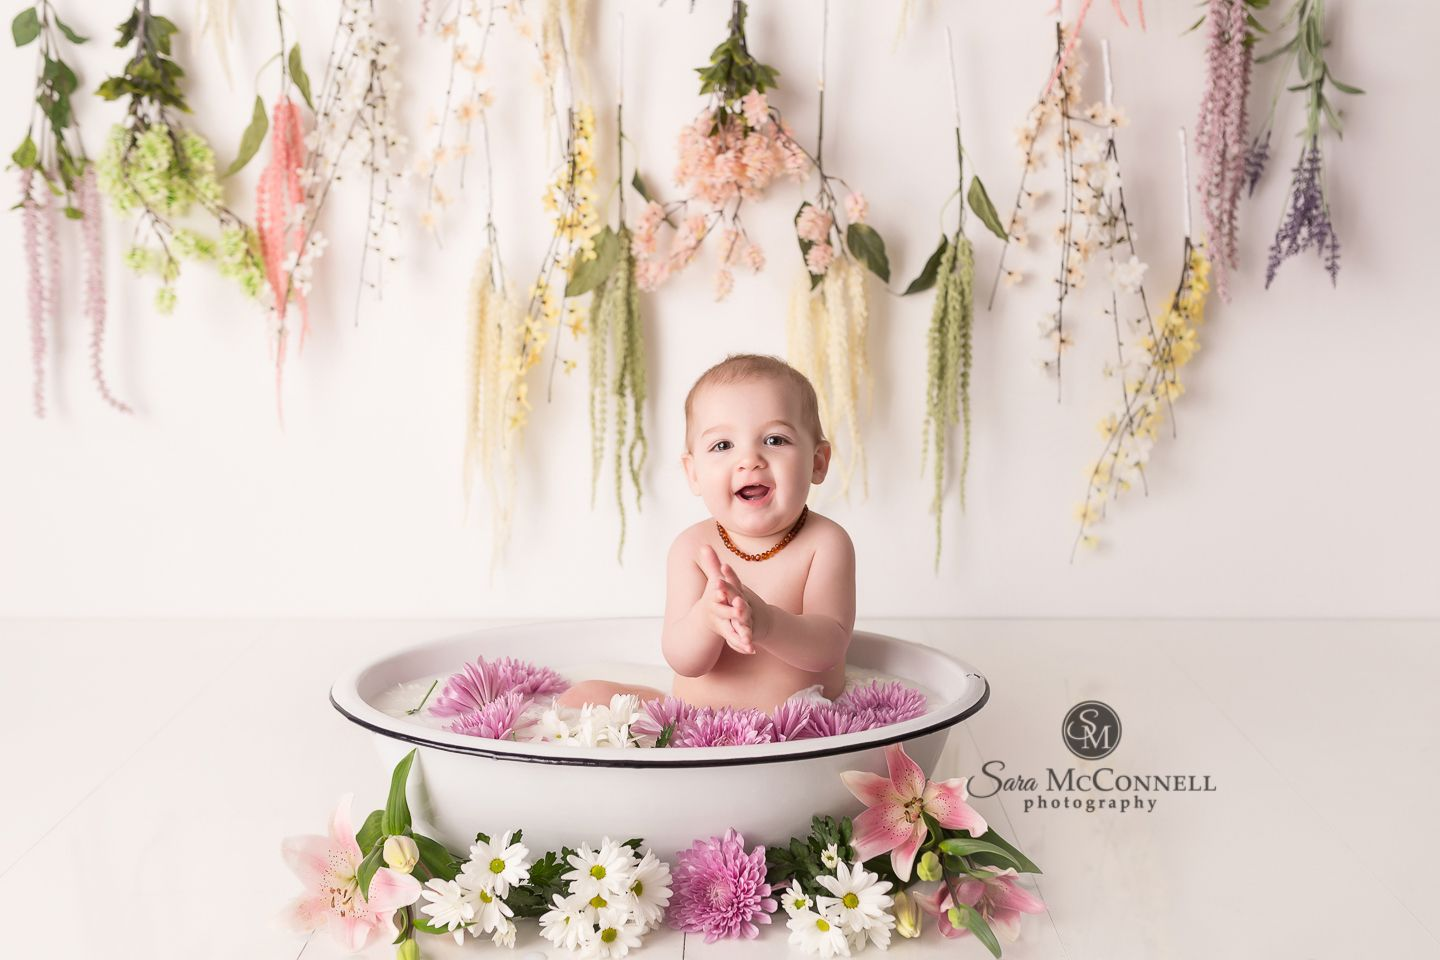 Love the idea of flowers around the base! Ottawa Baby Photographer | Milk Bath Sessions #milkbath